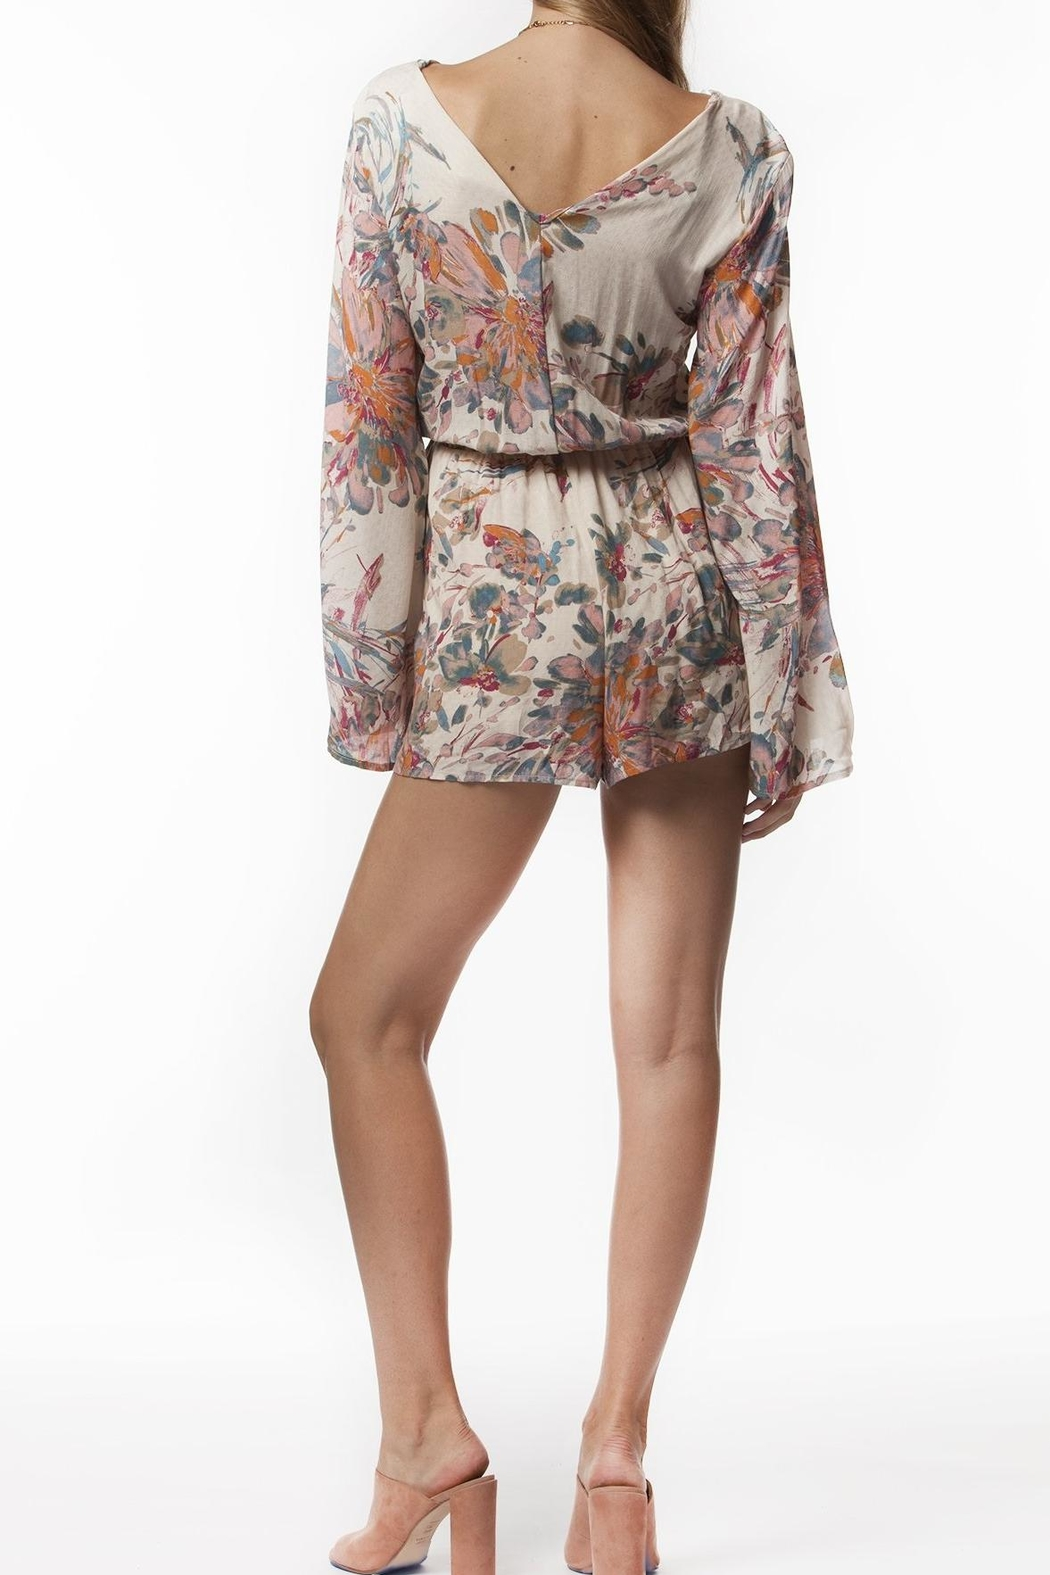 PPLA Floral Woven Romper - Back Cropped Image